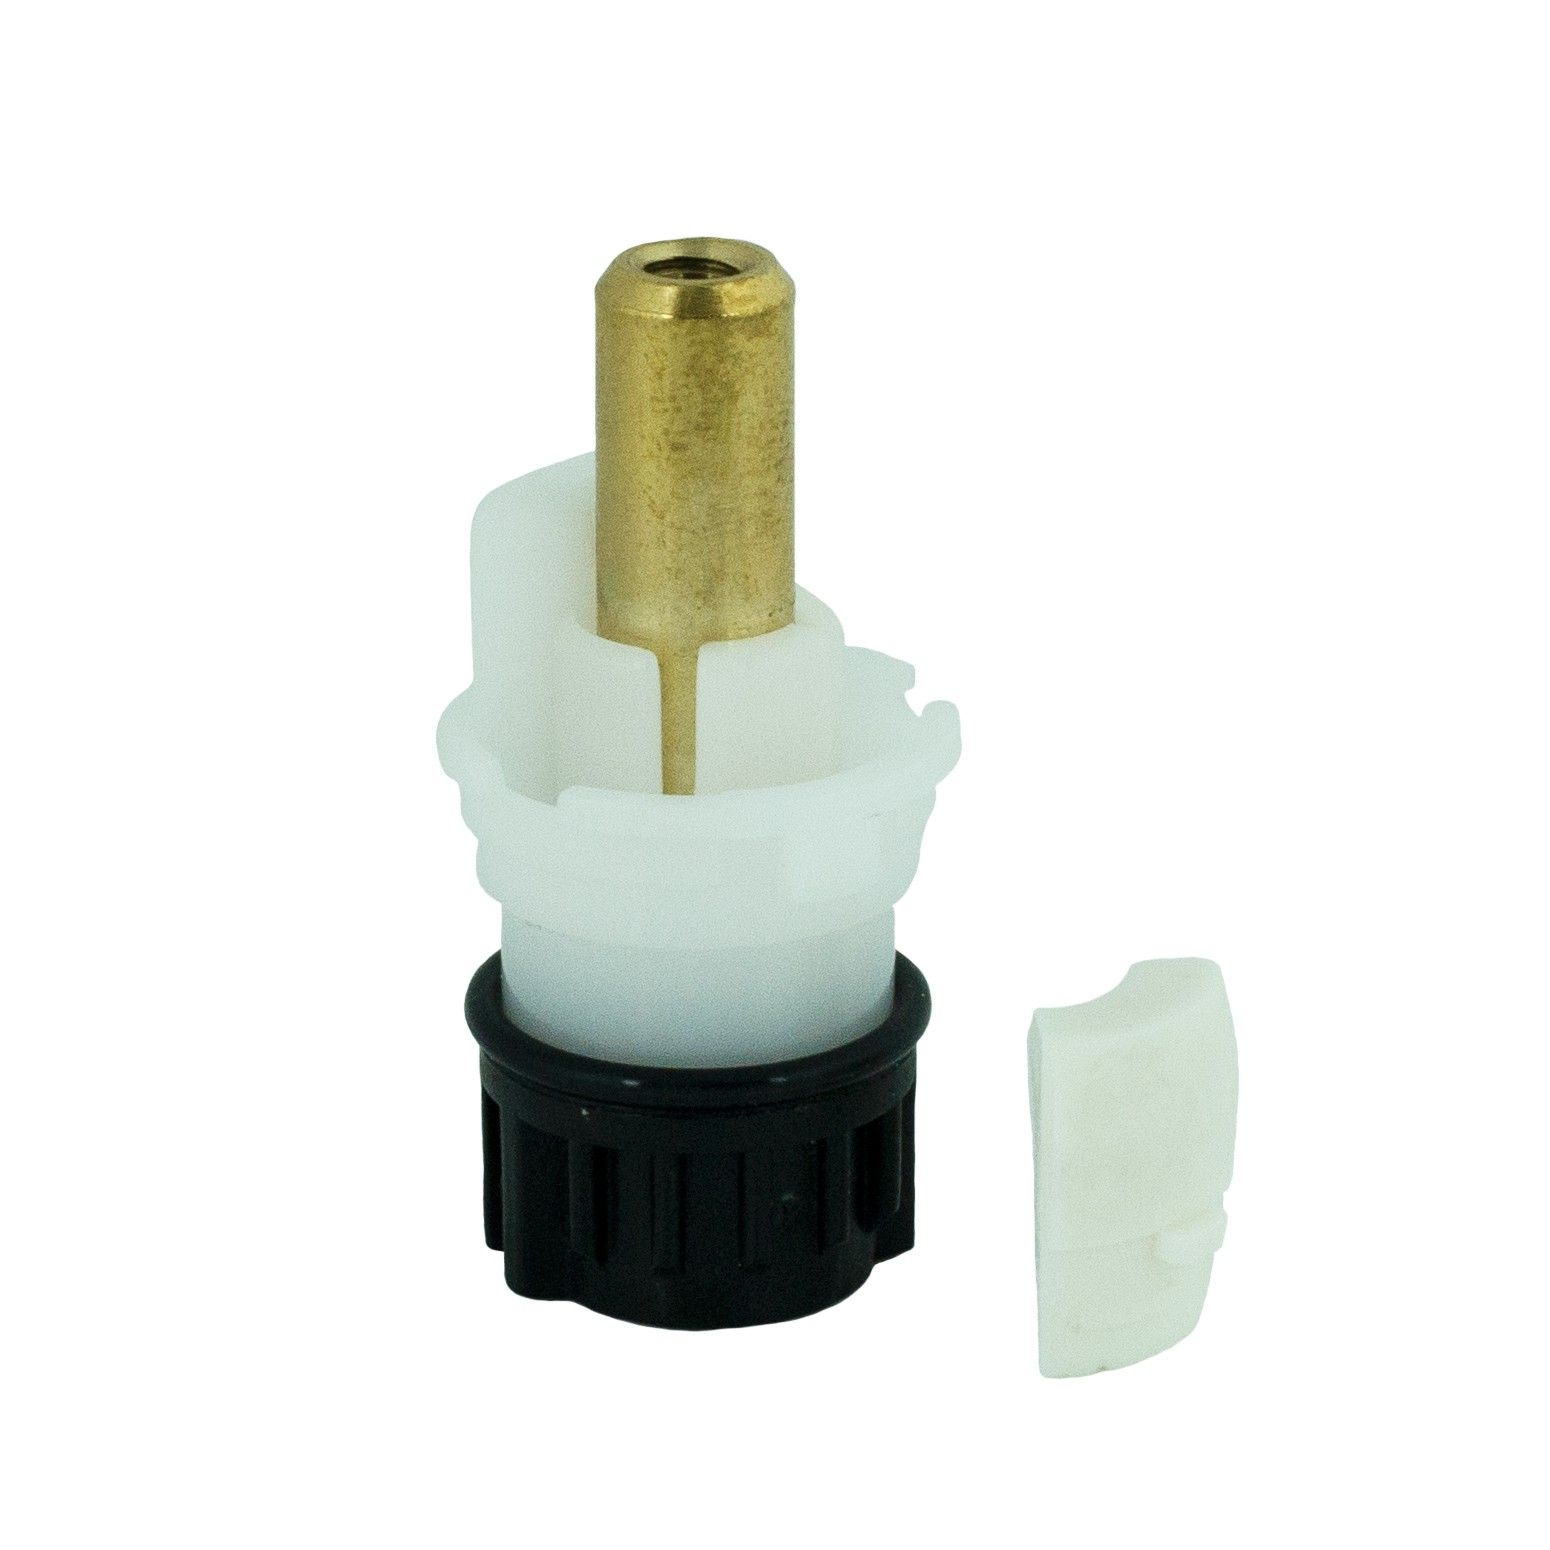 Flowrite Replacement Stem Assembly For Delta Faucet Rp25513 With